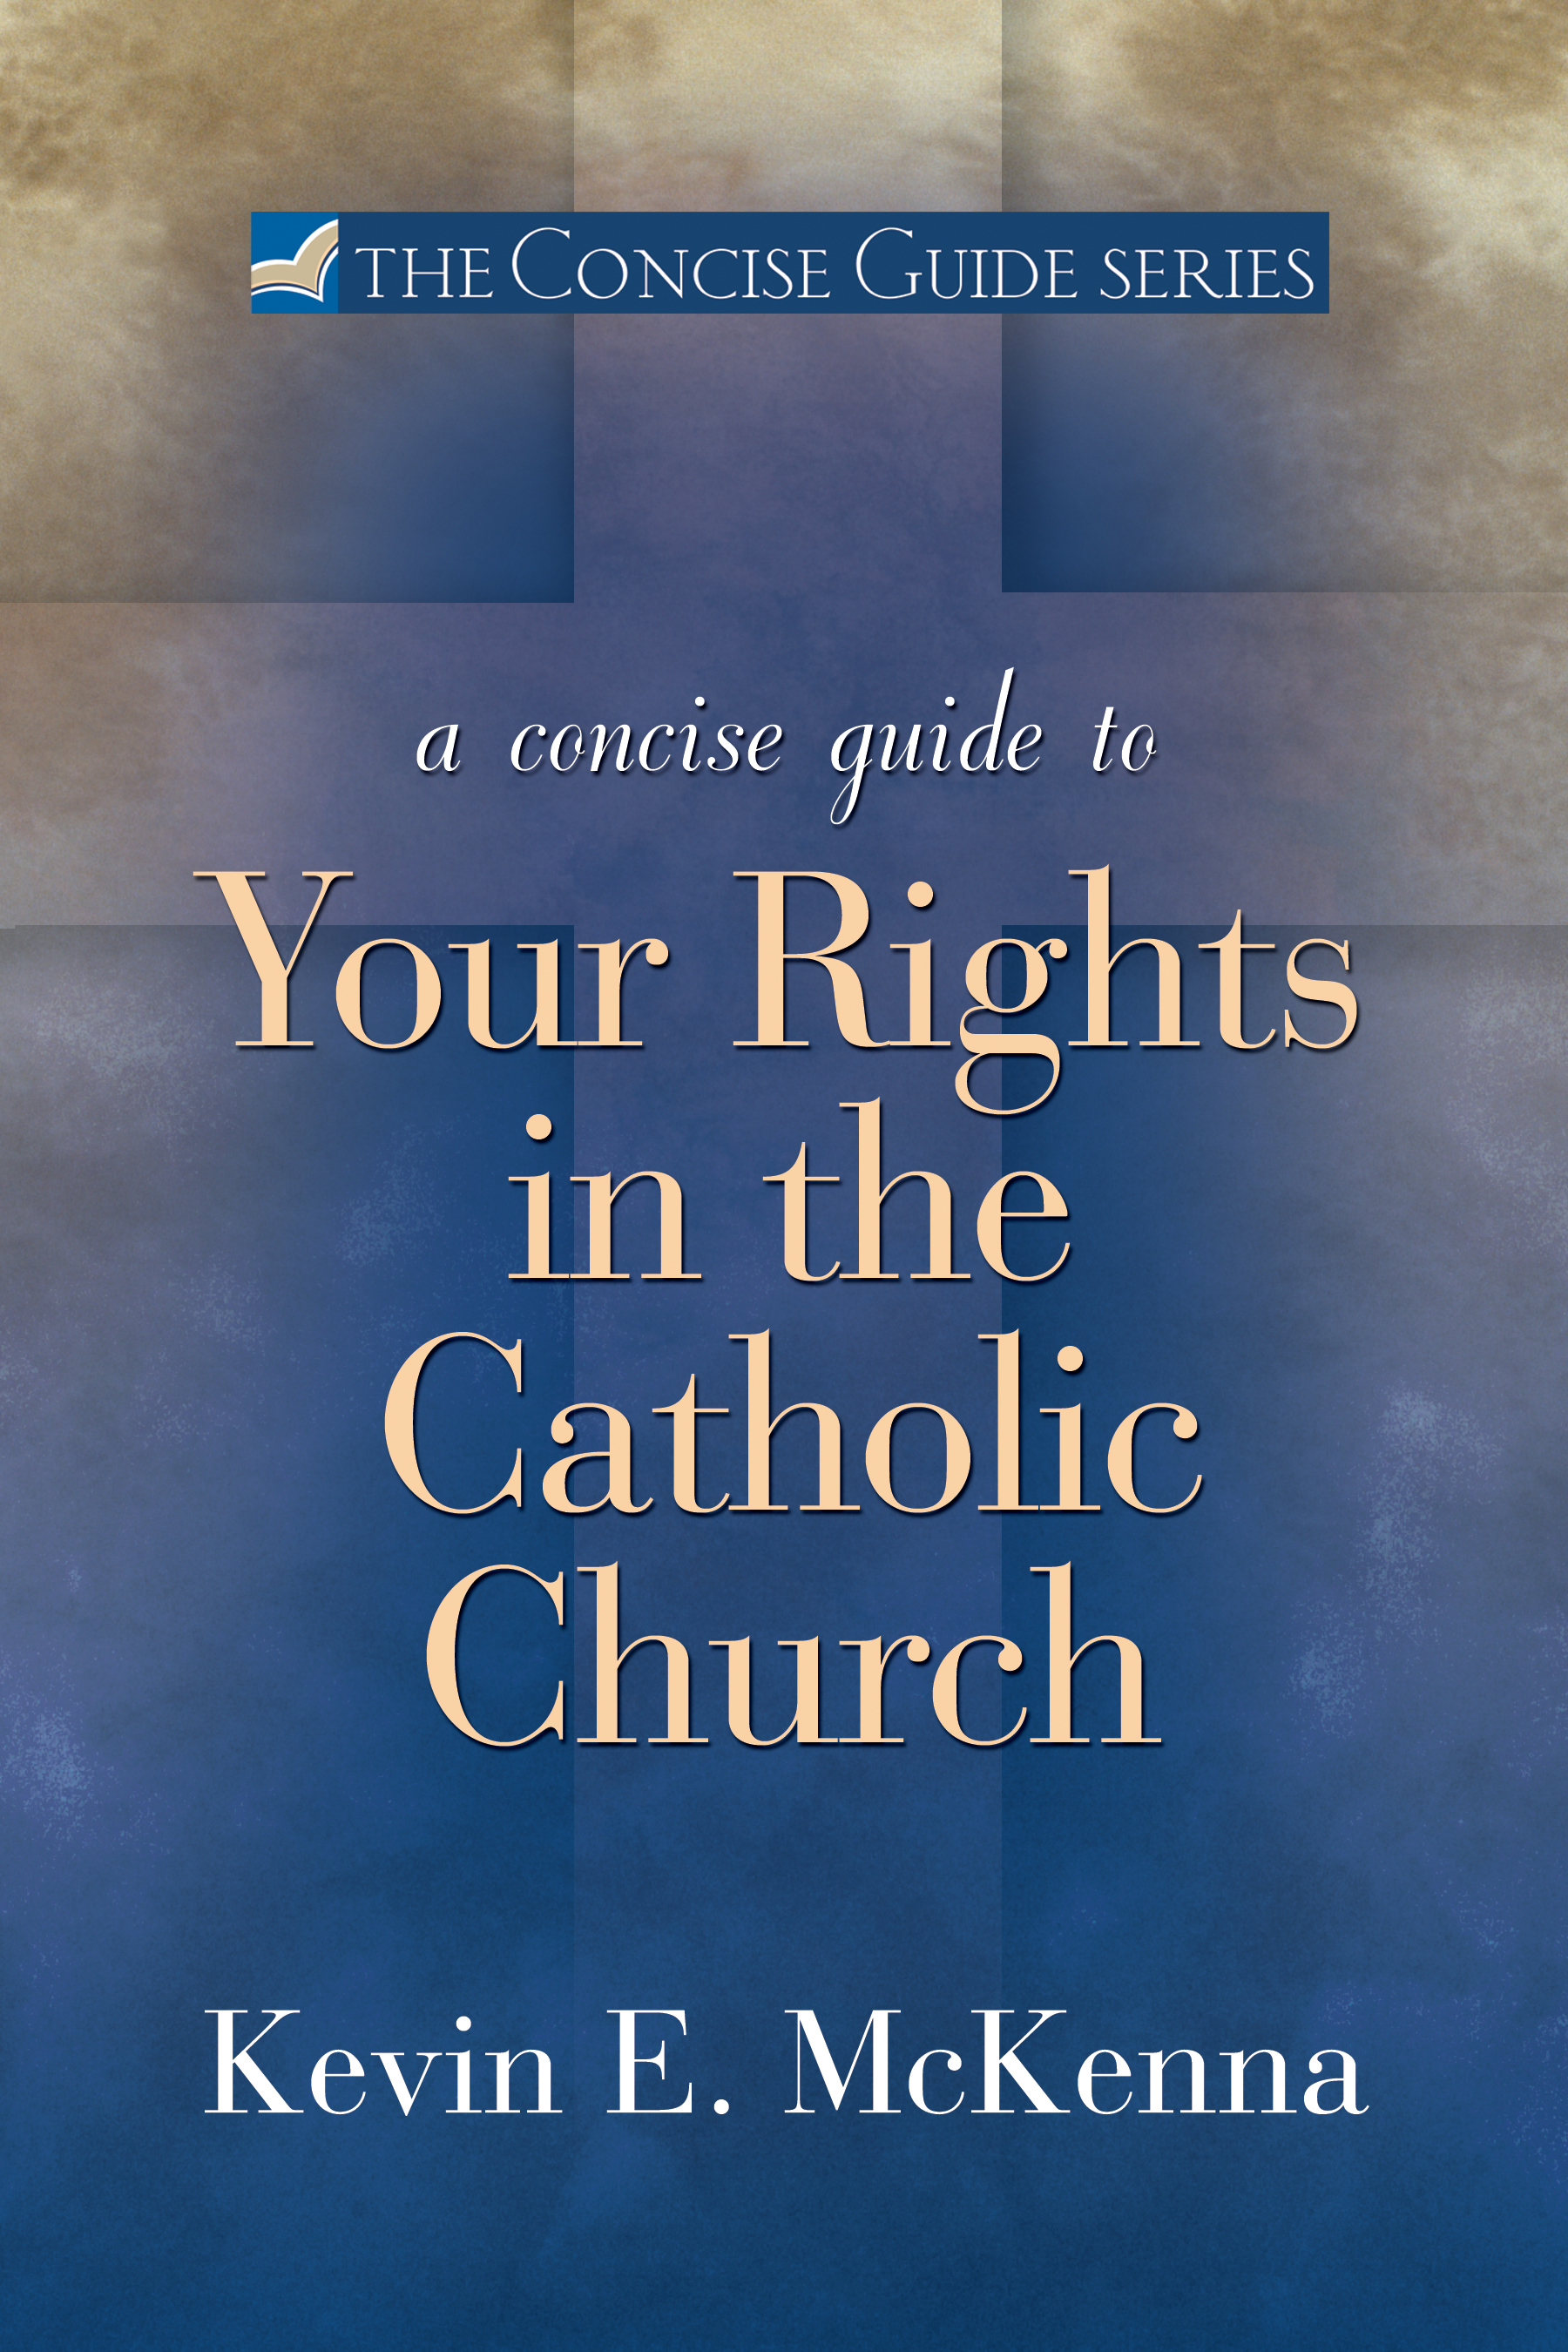 A Concise Guide to Your Rights in the Catholic Church